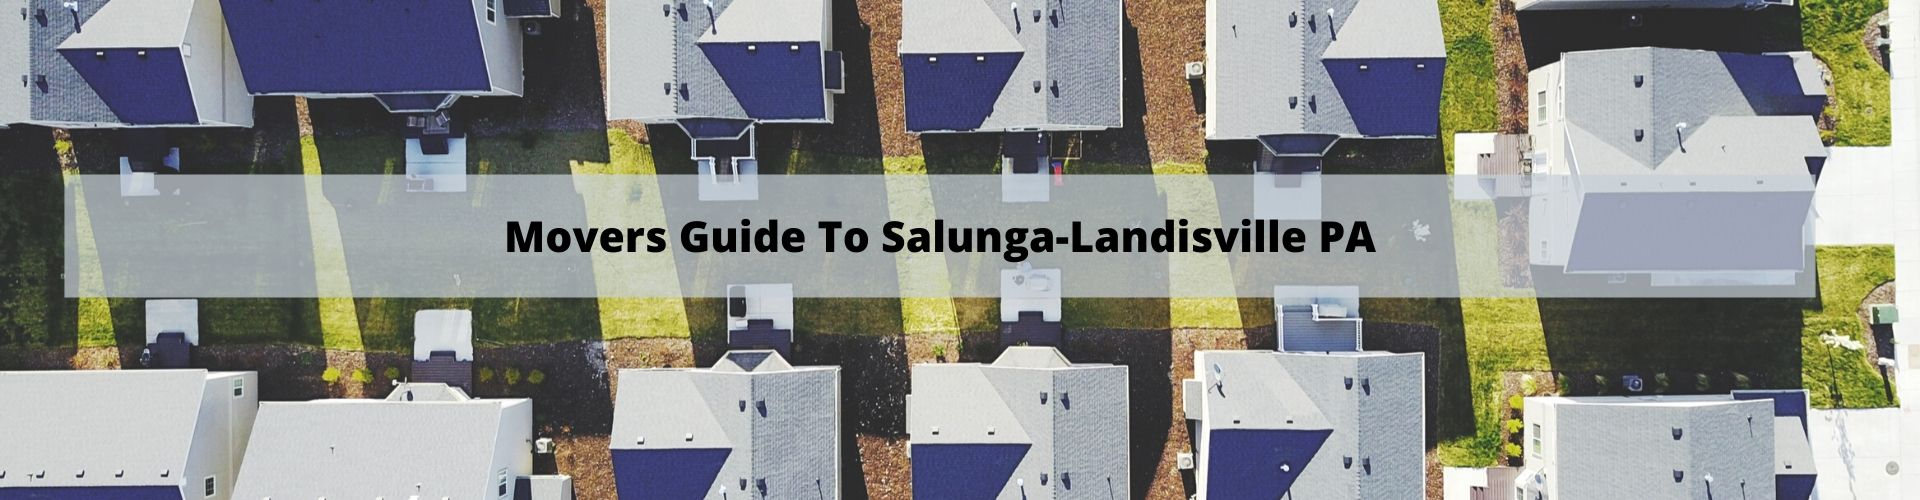 Mover's Guide to Salunga-Landisville PA